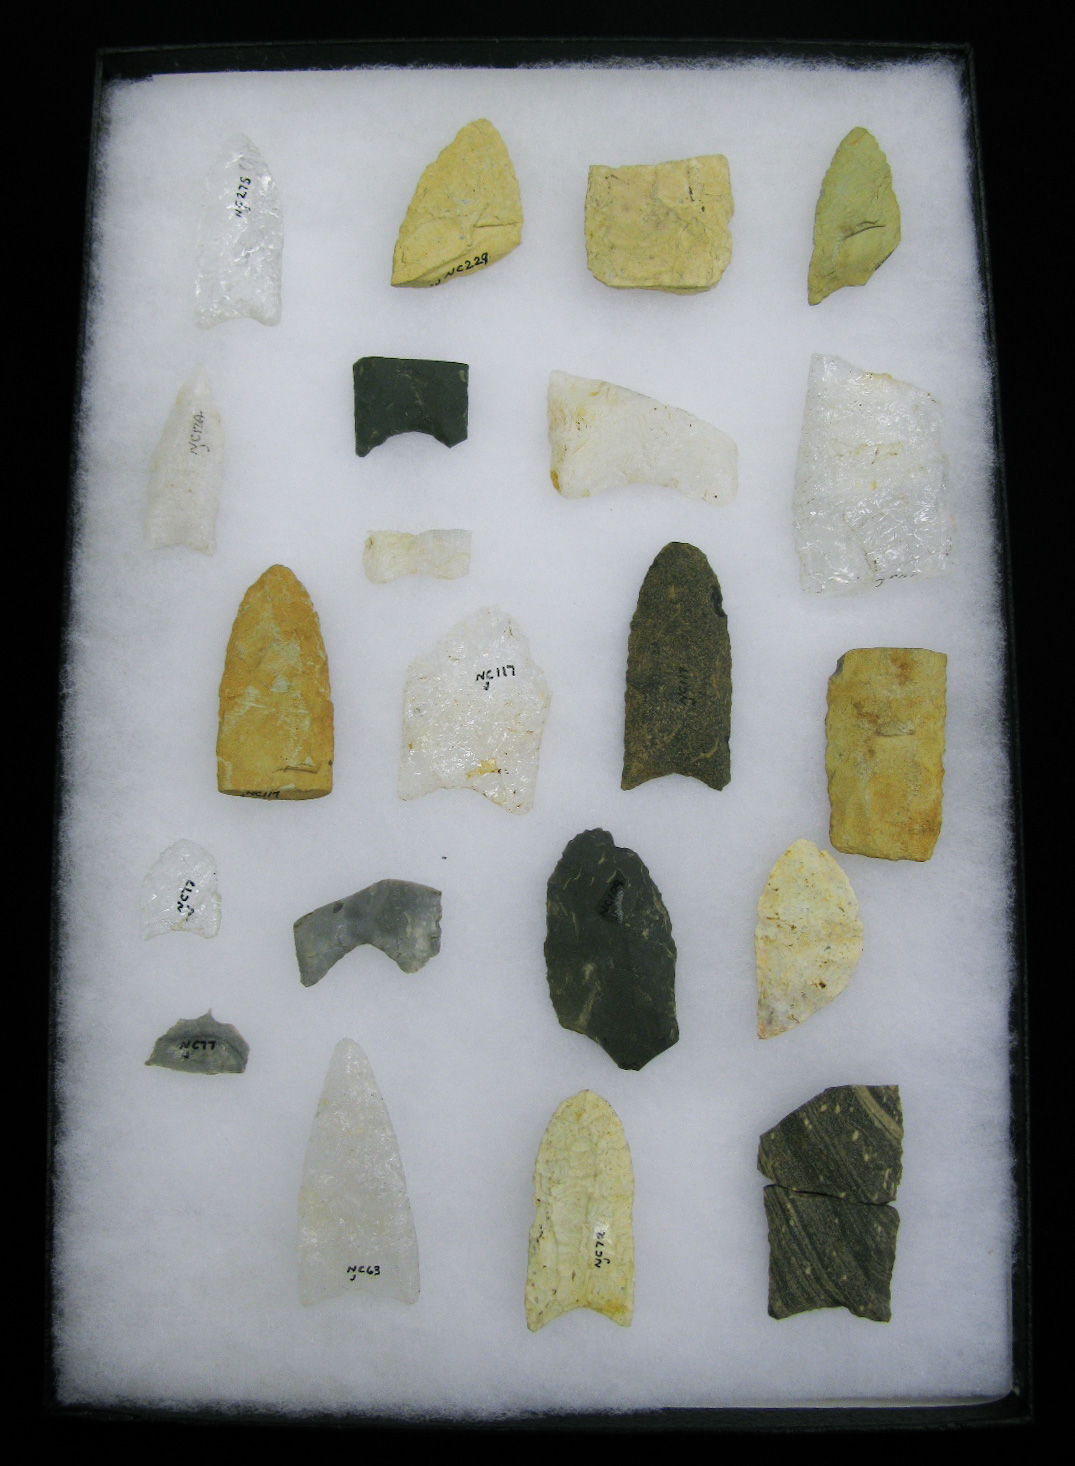 Projectile points donated to the OSA by collectors who meticulously recorded their findings.